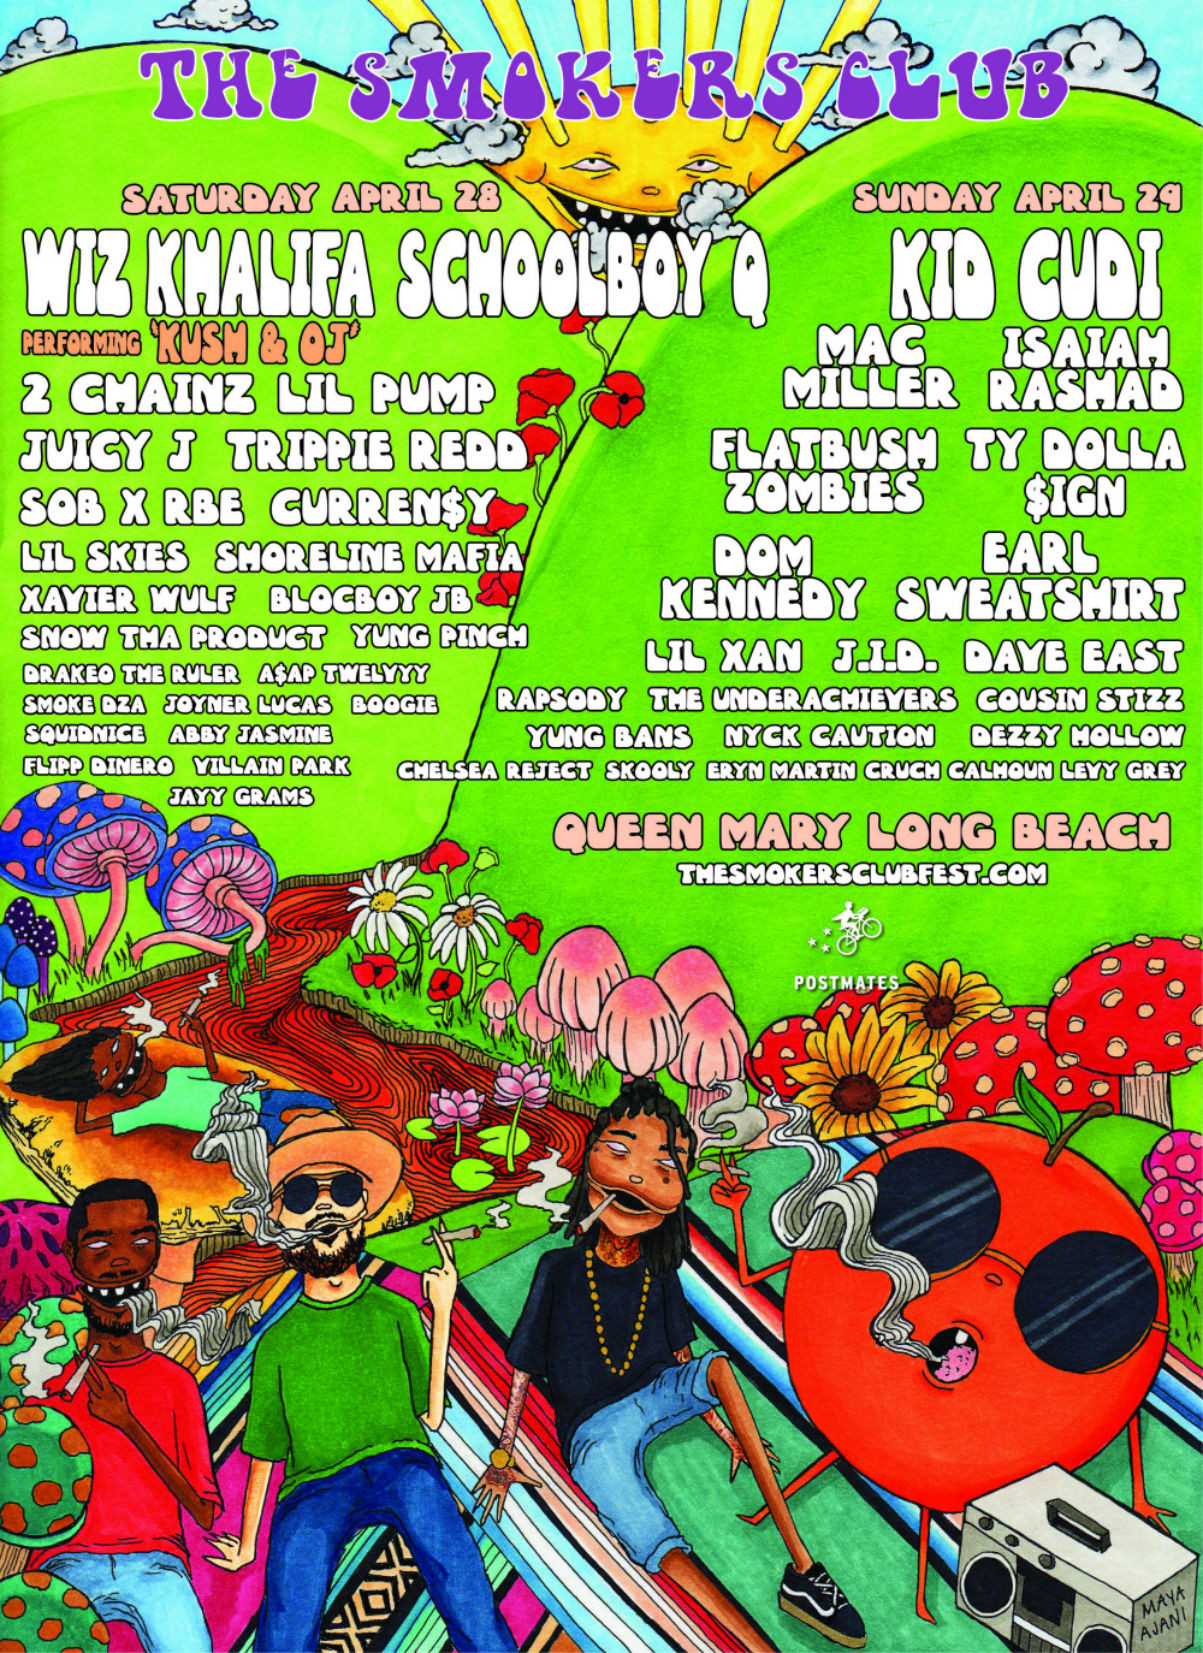 Kid Cudi Wiz Khalifa SchoolBoy Q Headliners 2018 Smokers Club Tour Album Leak Single Music Video EP Mixtape Download Stream Discography 2018 Live Show Performance Tour Dates Album Review Tracklist Remix